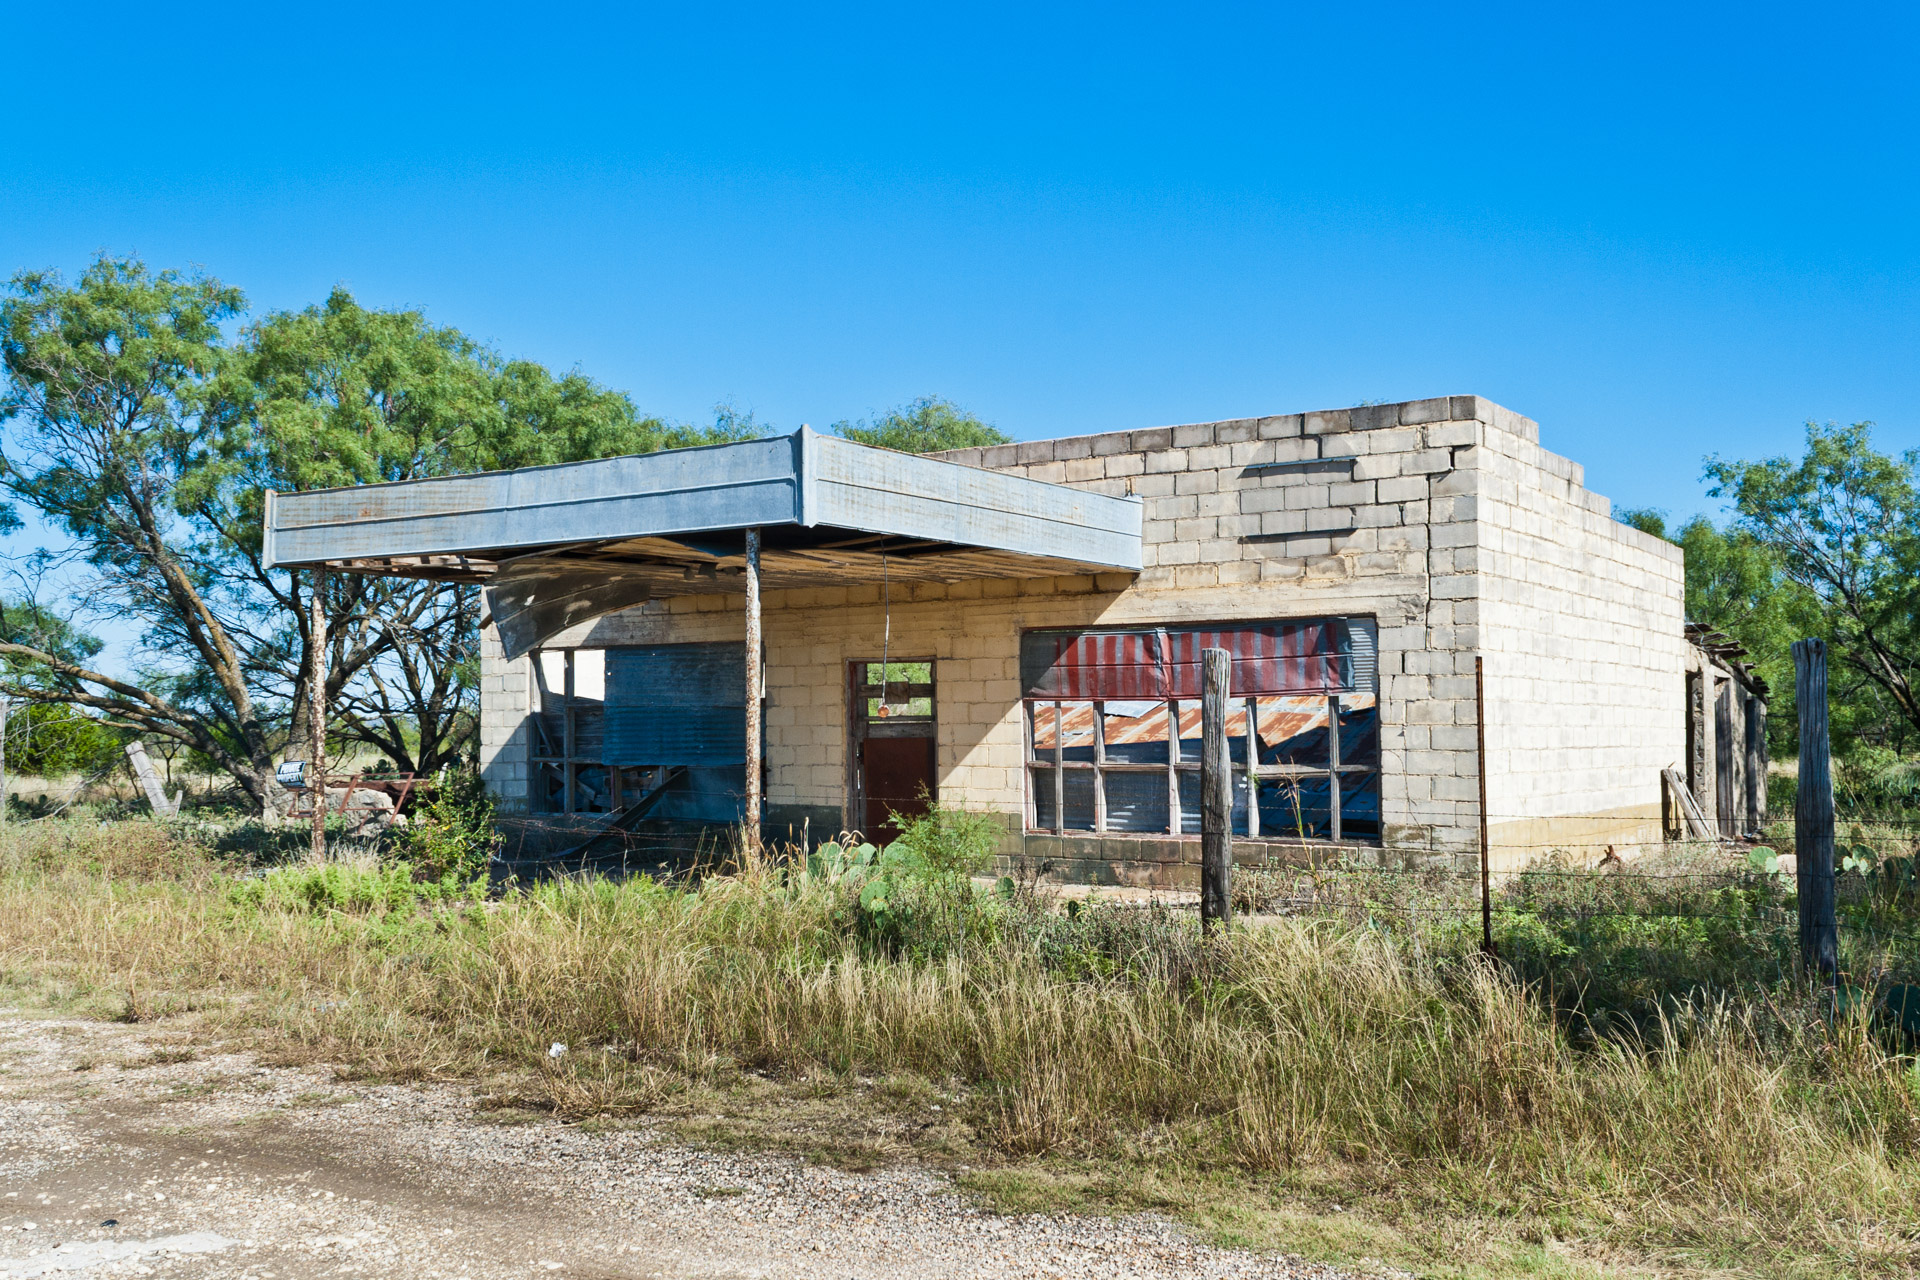 Talpa, Texas - The Falling Tin Store (side far)